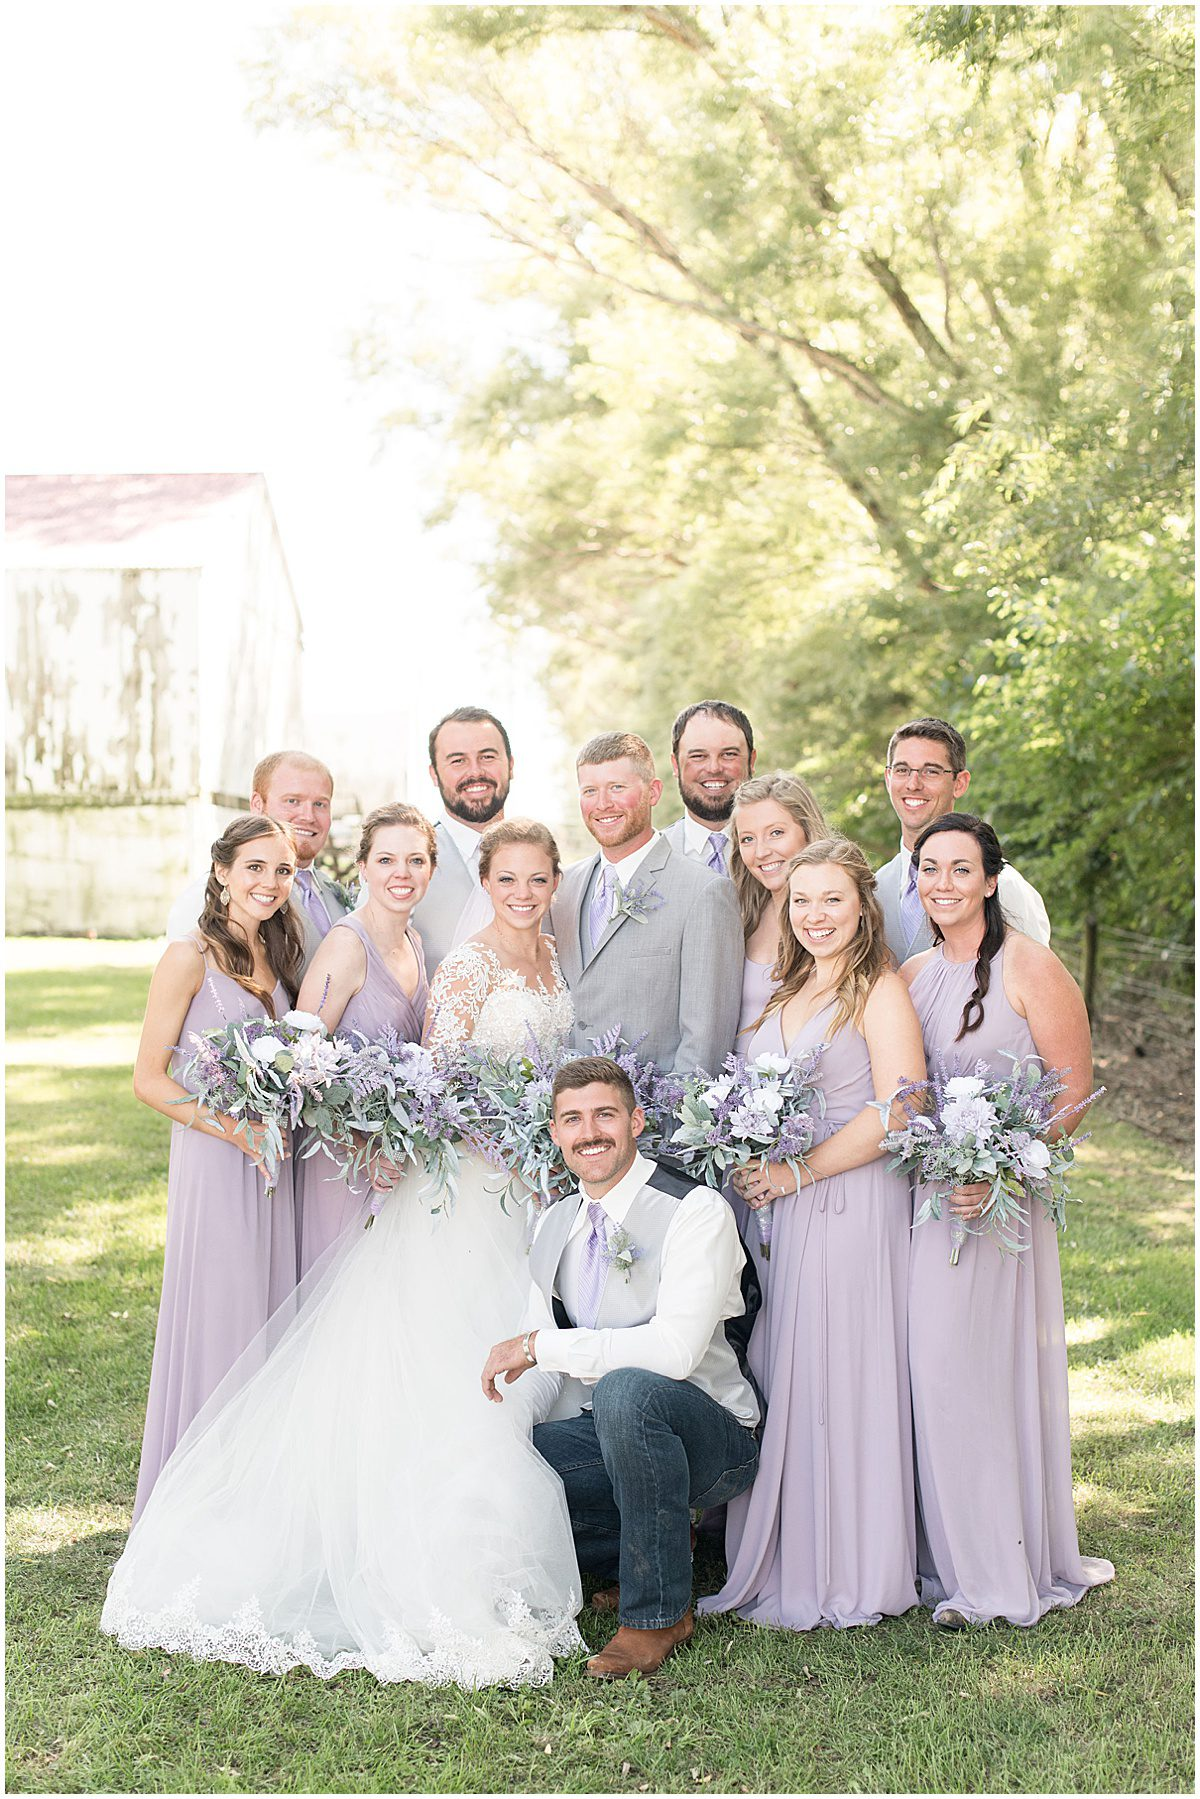 Bridal party for wedding at the Wagner Angus Barn in Wolcott, Indiana by Victoria Rayburn Photography